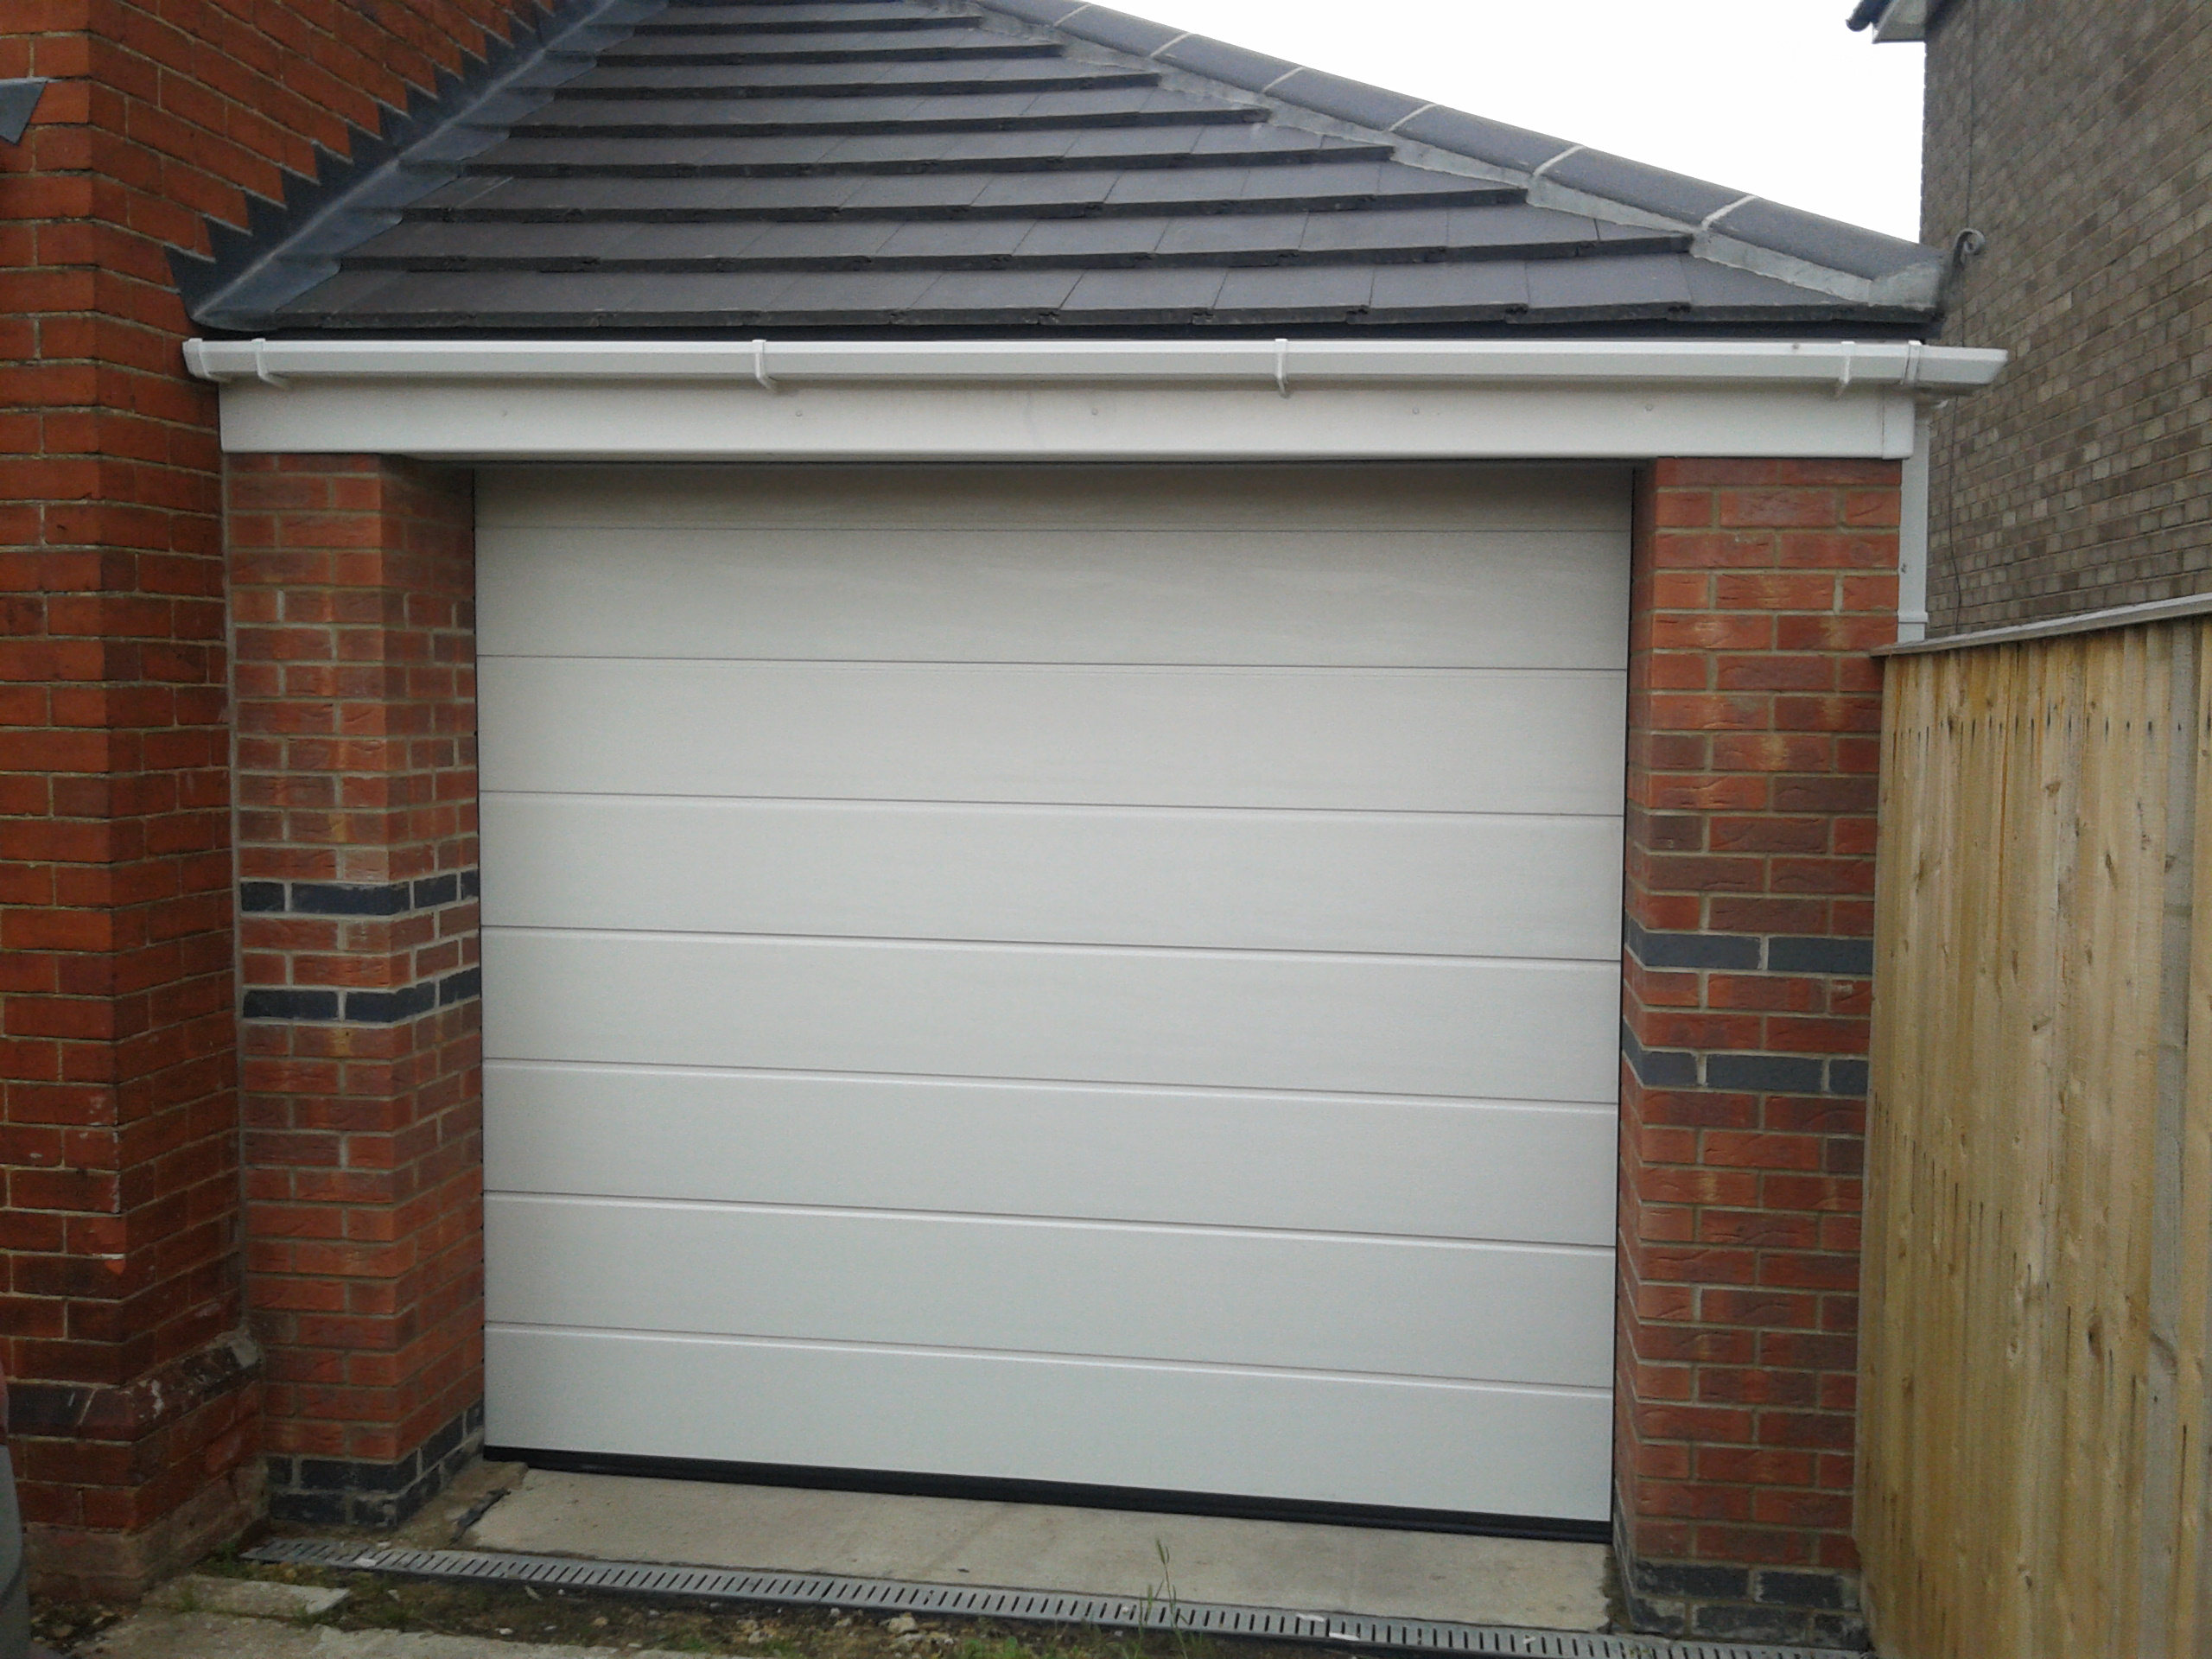 Mrib sectional automatic garage door garage door company for Garage doors uk